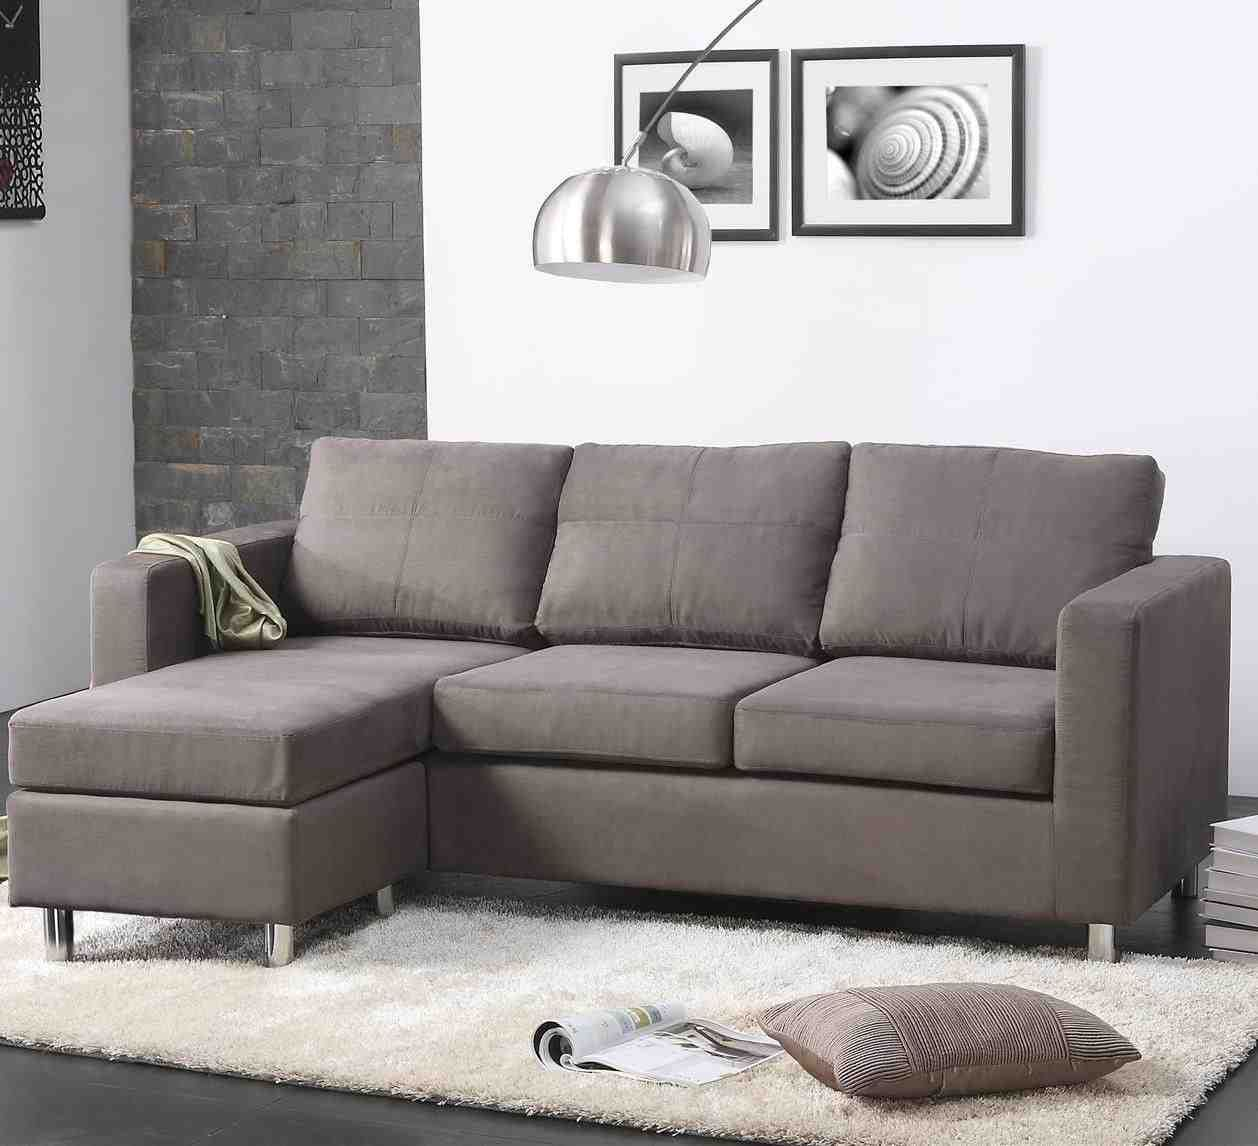 Best Small L Shaped Sectional Sofa Sofas For Small Spaces 400 x 300